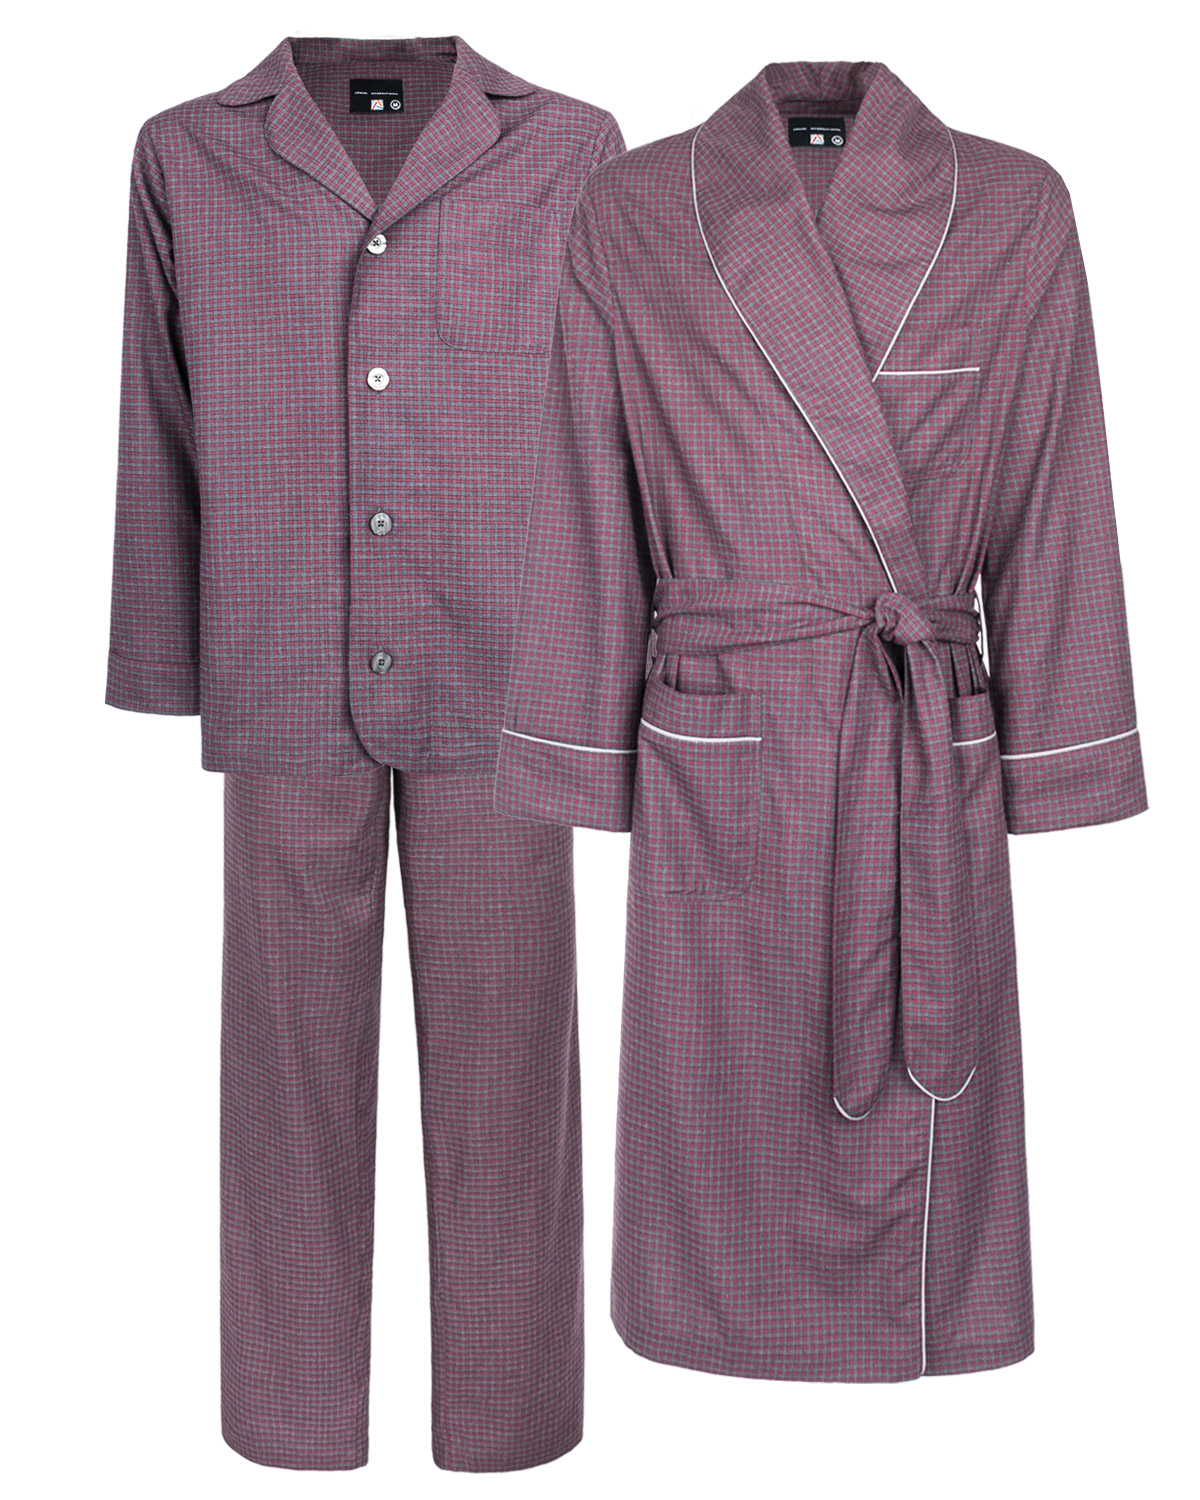 Pajamas + Robe Set Brushed Thermal Checked Grey-Burgundy, Sophestique Immense